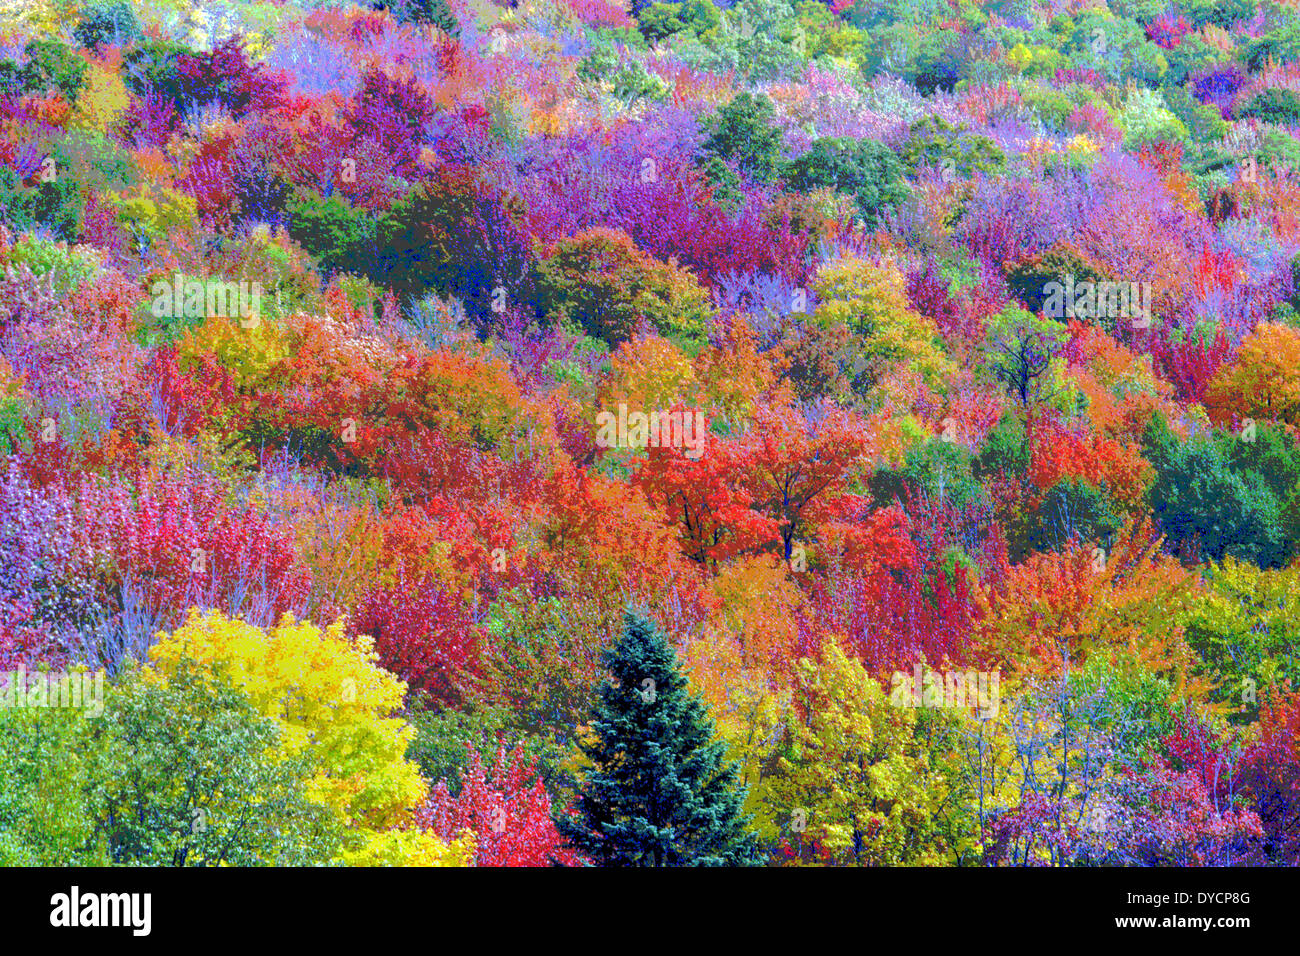 The multicolored leaves of trees during autumn in New England, USA, have been digitally altered to create a vibrant painting of Fall Foliage. - Stock Image